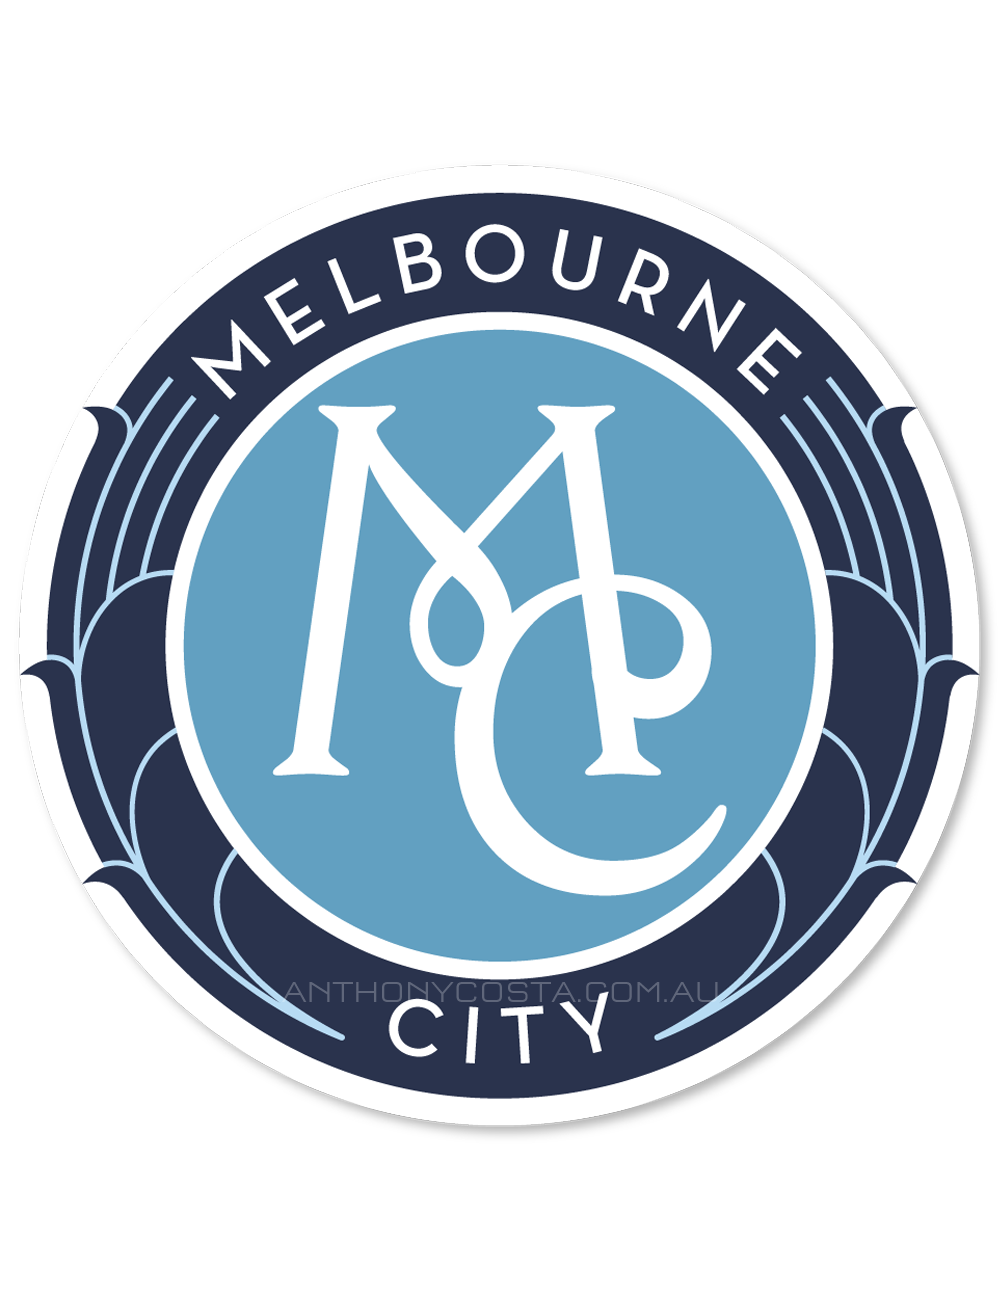 Melbourne City football logo design